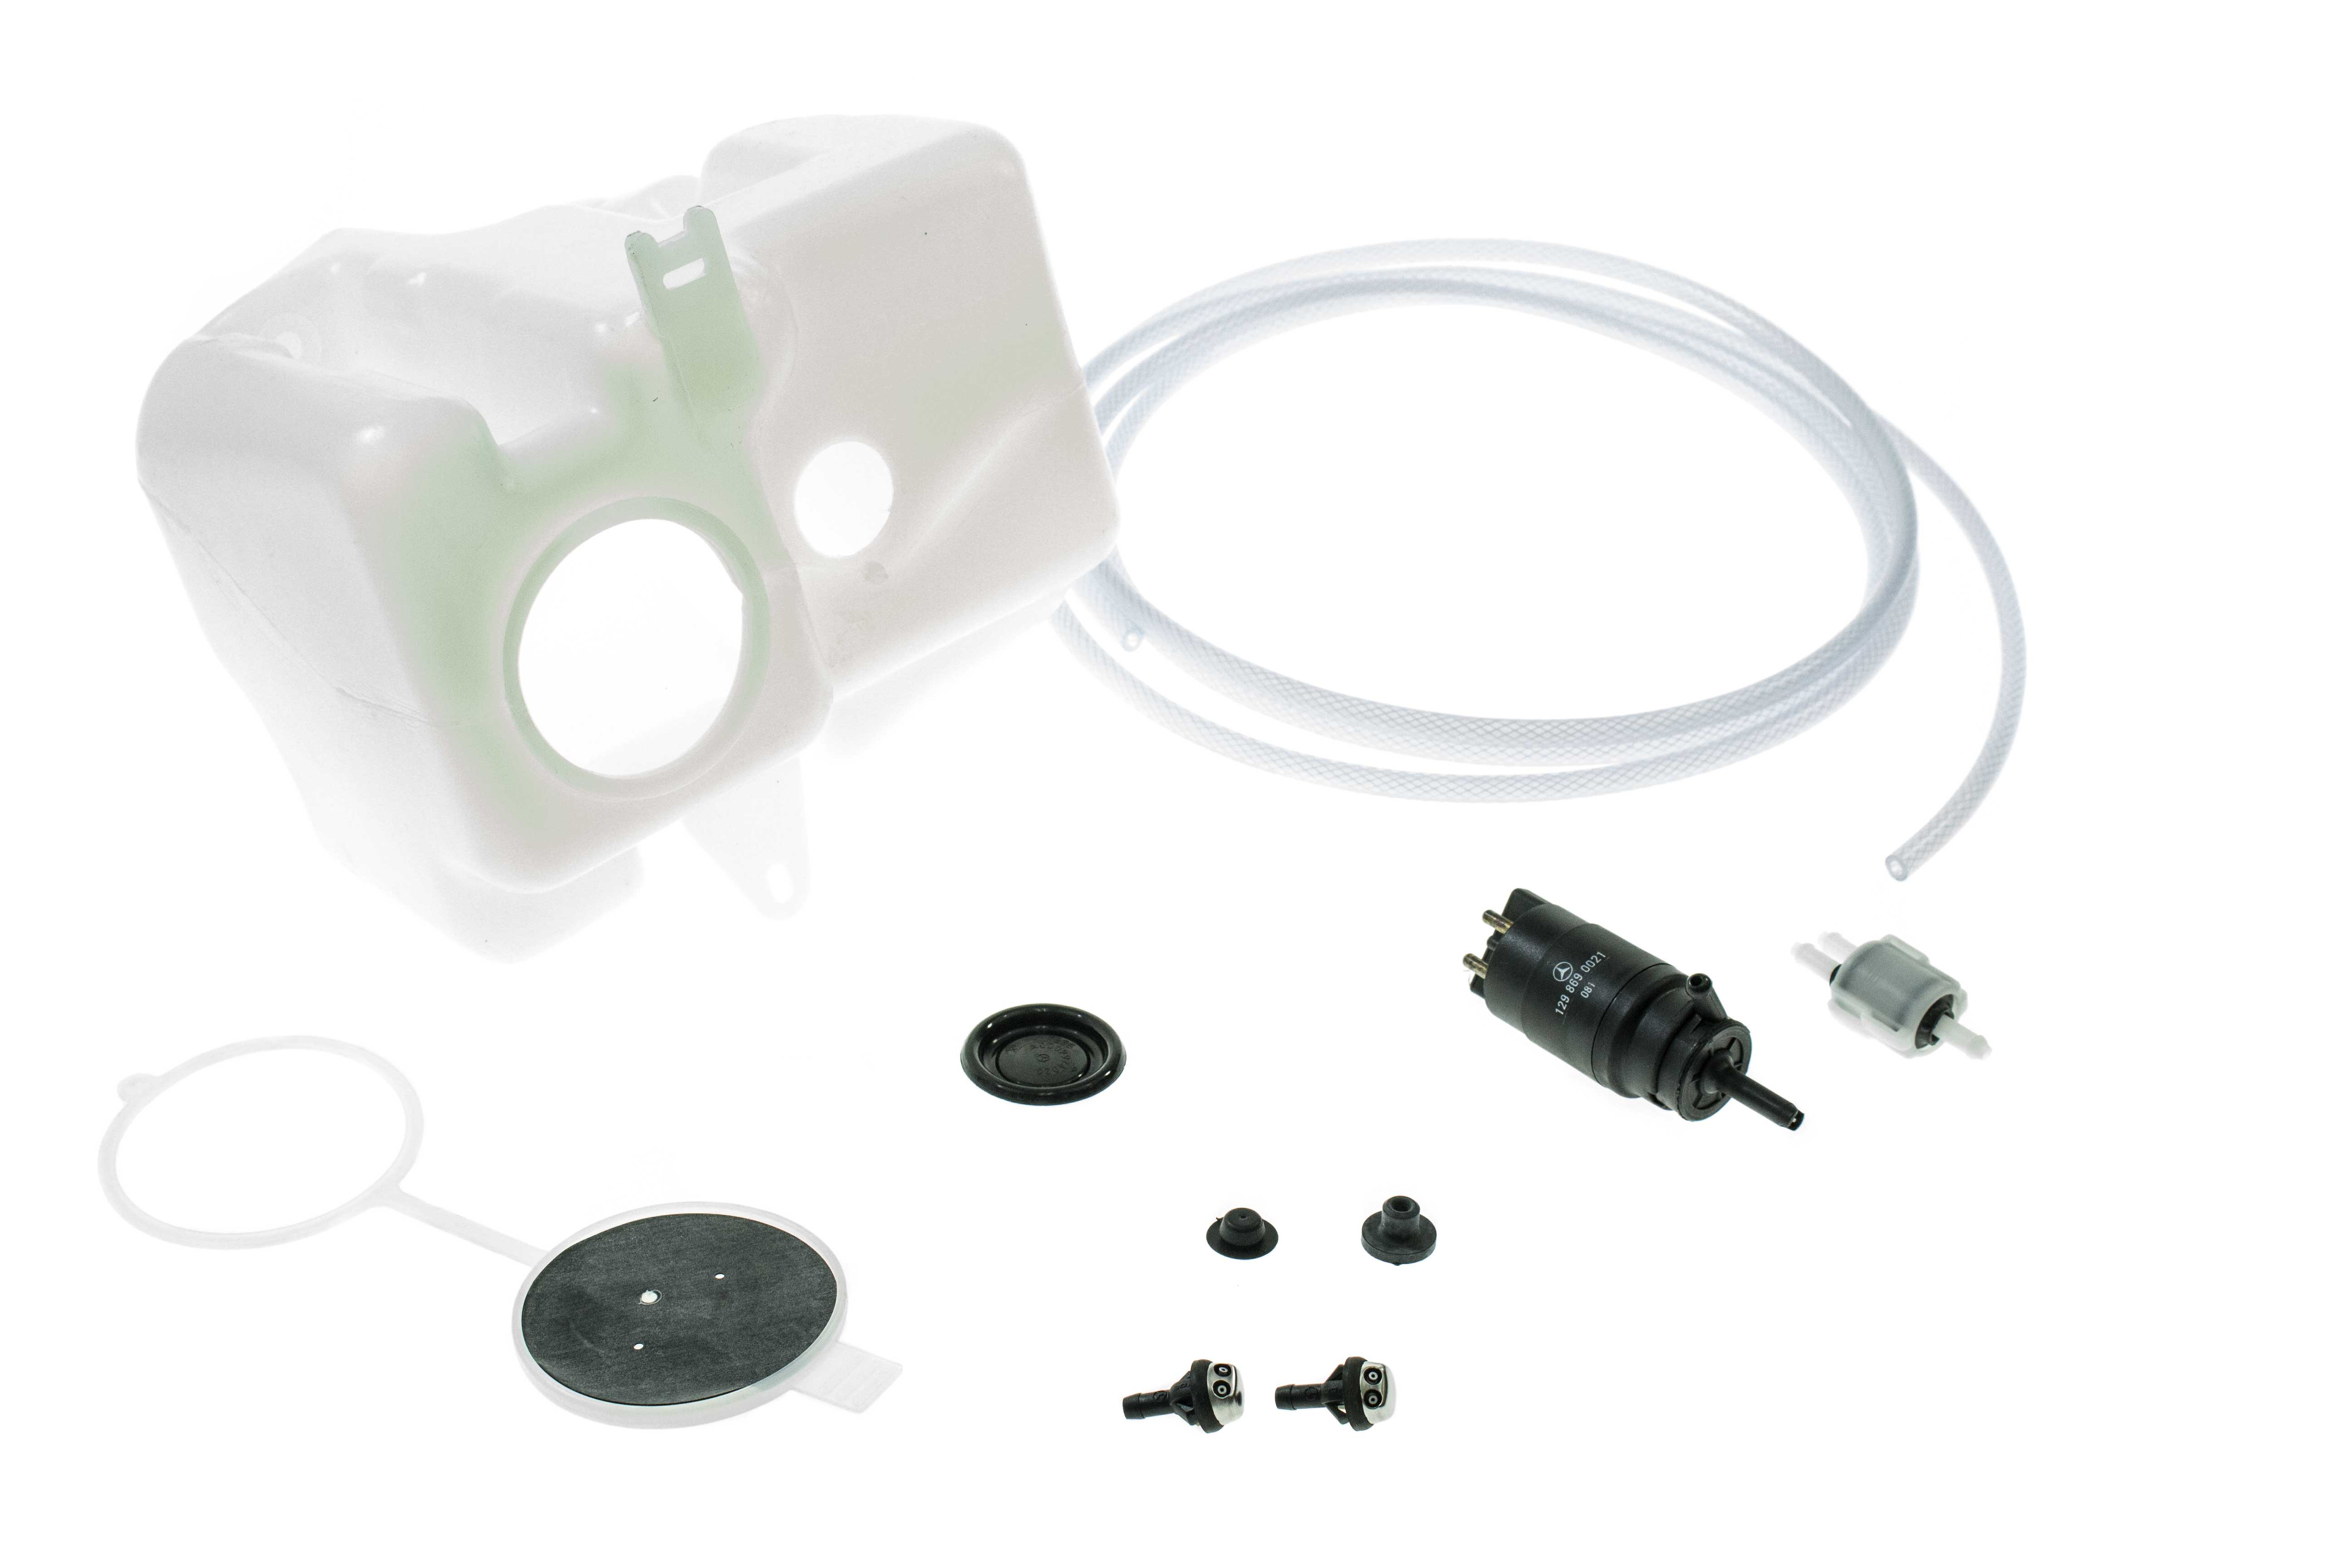 107WWKIT AAZ Preferred Windshield Washer Fluid Reservoir; Reservoir, Cap, Pump, Nozzles and Hose; KIT